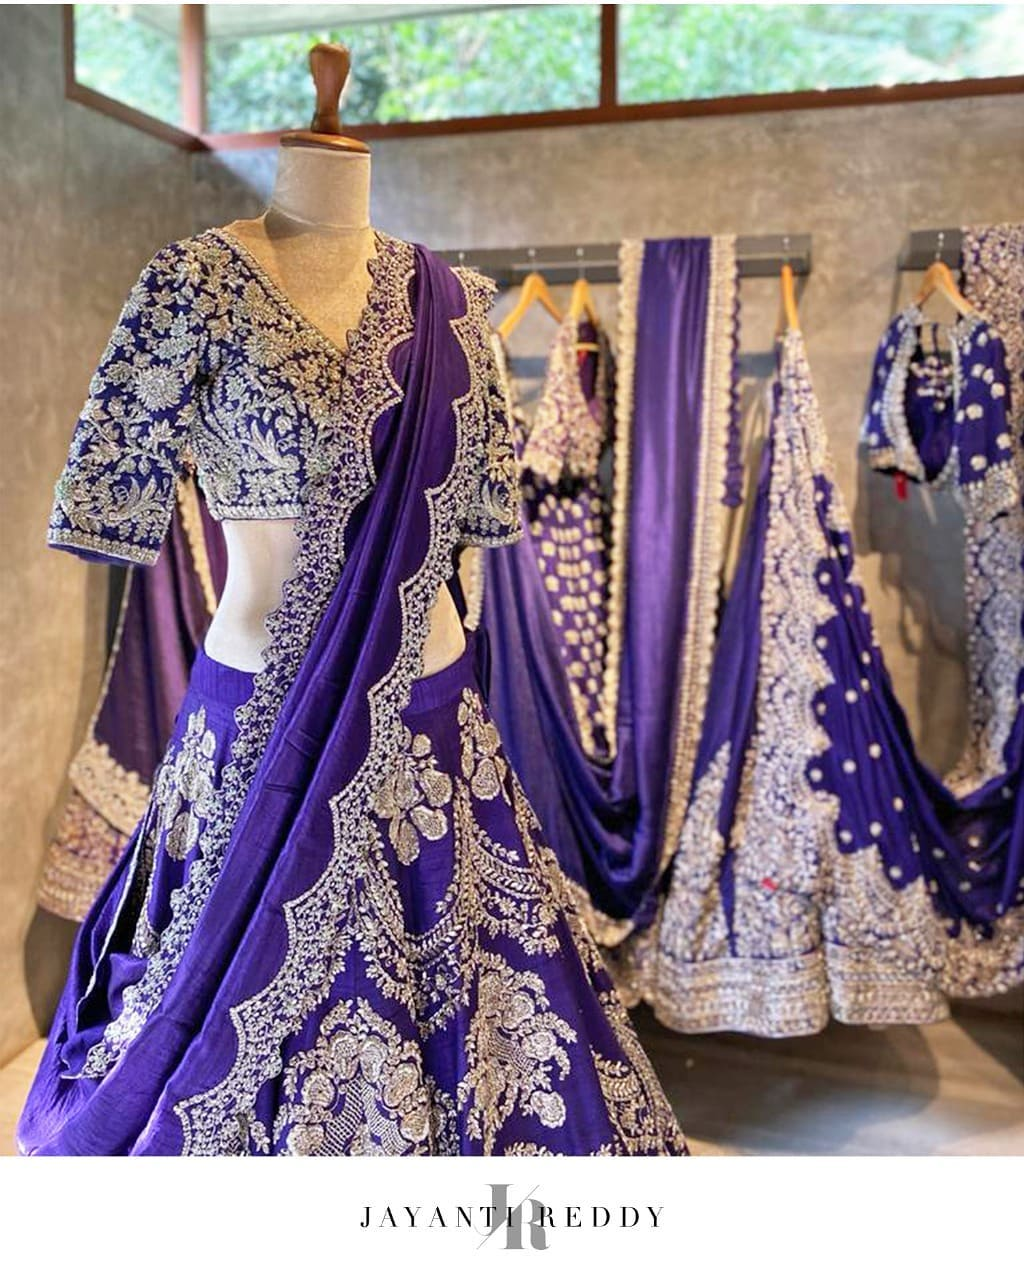 Floral inspired embroidery with tones of royalty for upcoming festive season. Bridal lehenga with floral embroidery. 2021-07-29